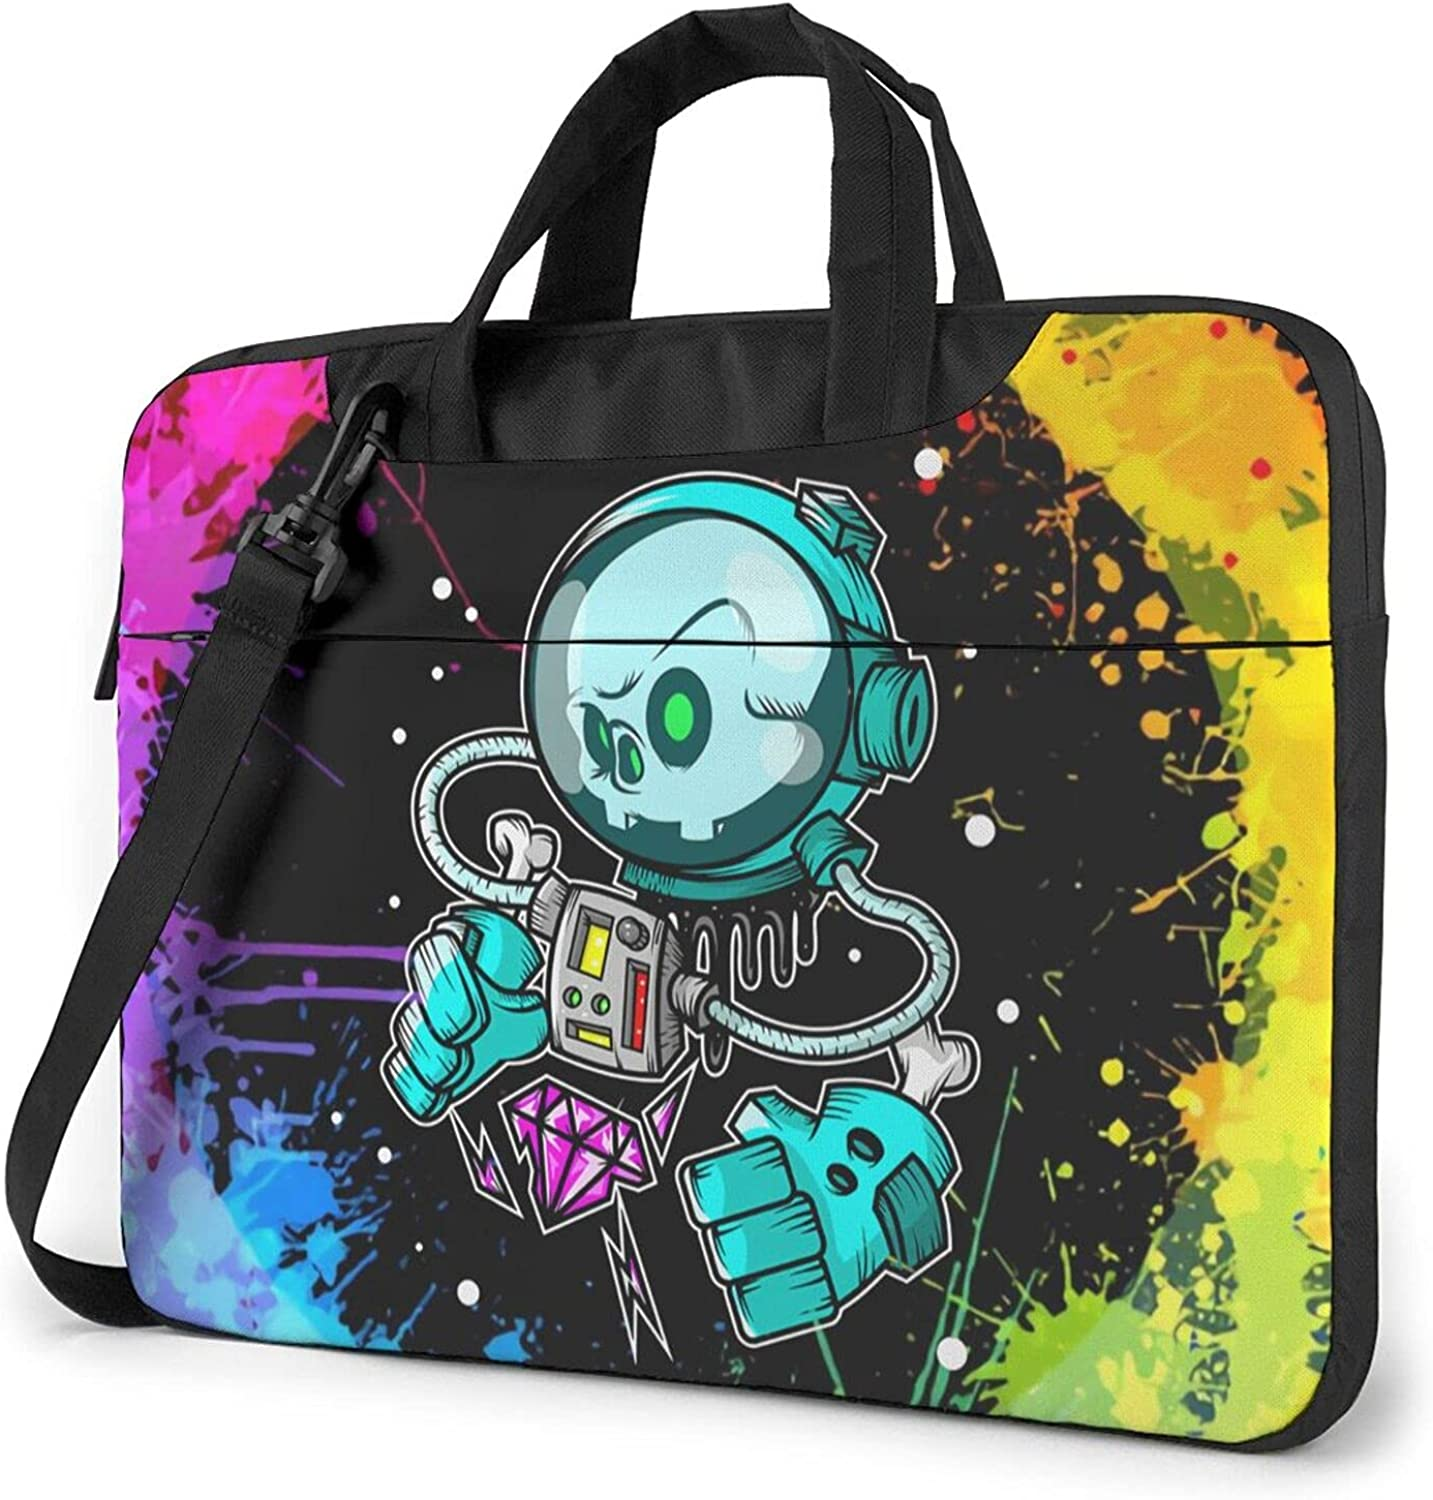 Rick And Morty Laptop Case Choice Compatible Macbook Noteb With Air Pro 5% OFF